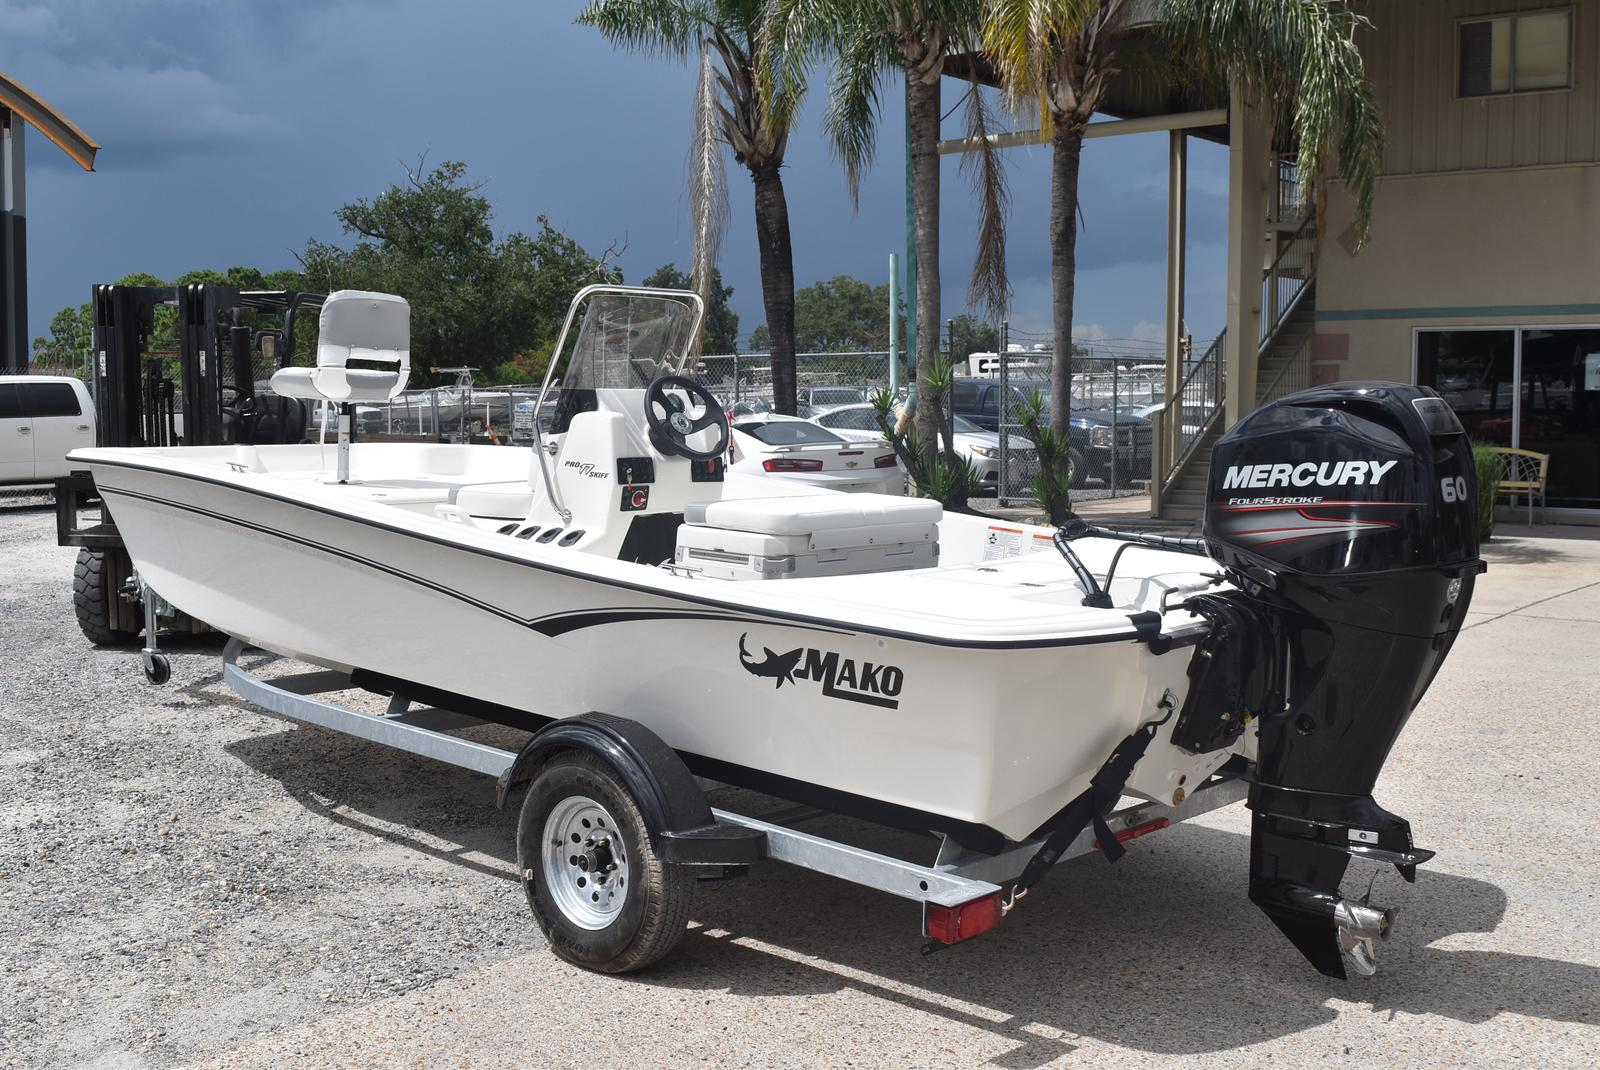 2020 Mako boat for sale, model of the boat is Pro Skiff 17, 75 ELPT & Image # 226 of 702